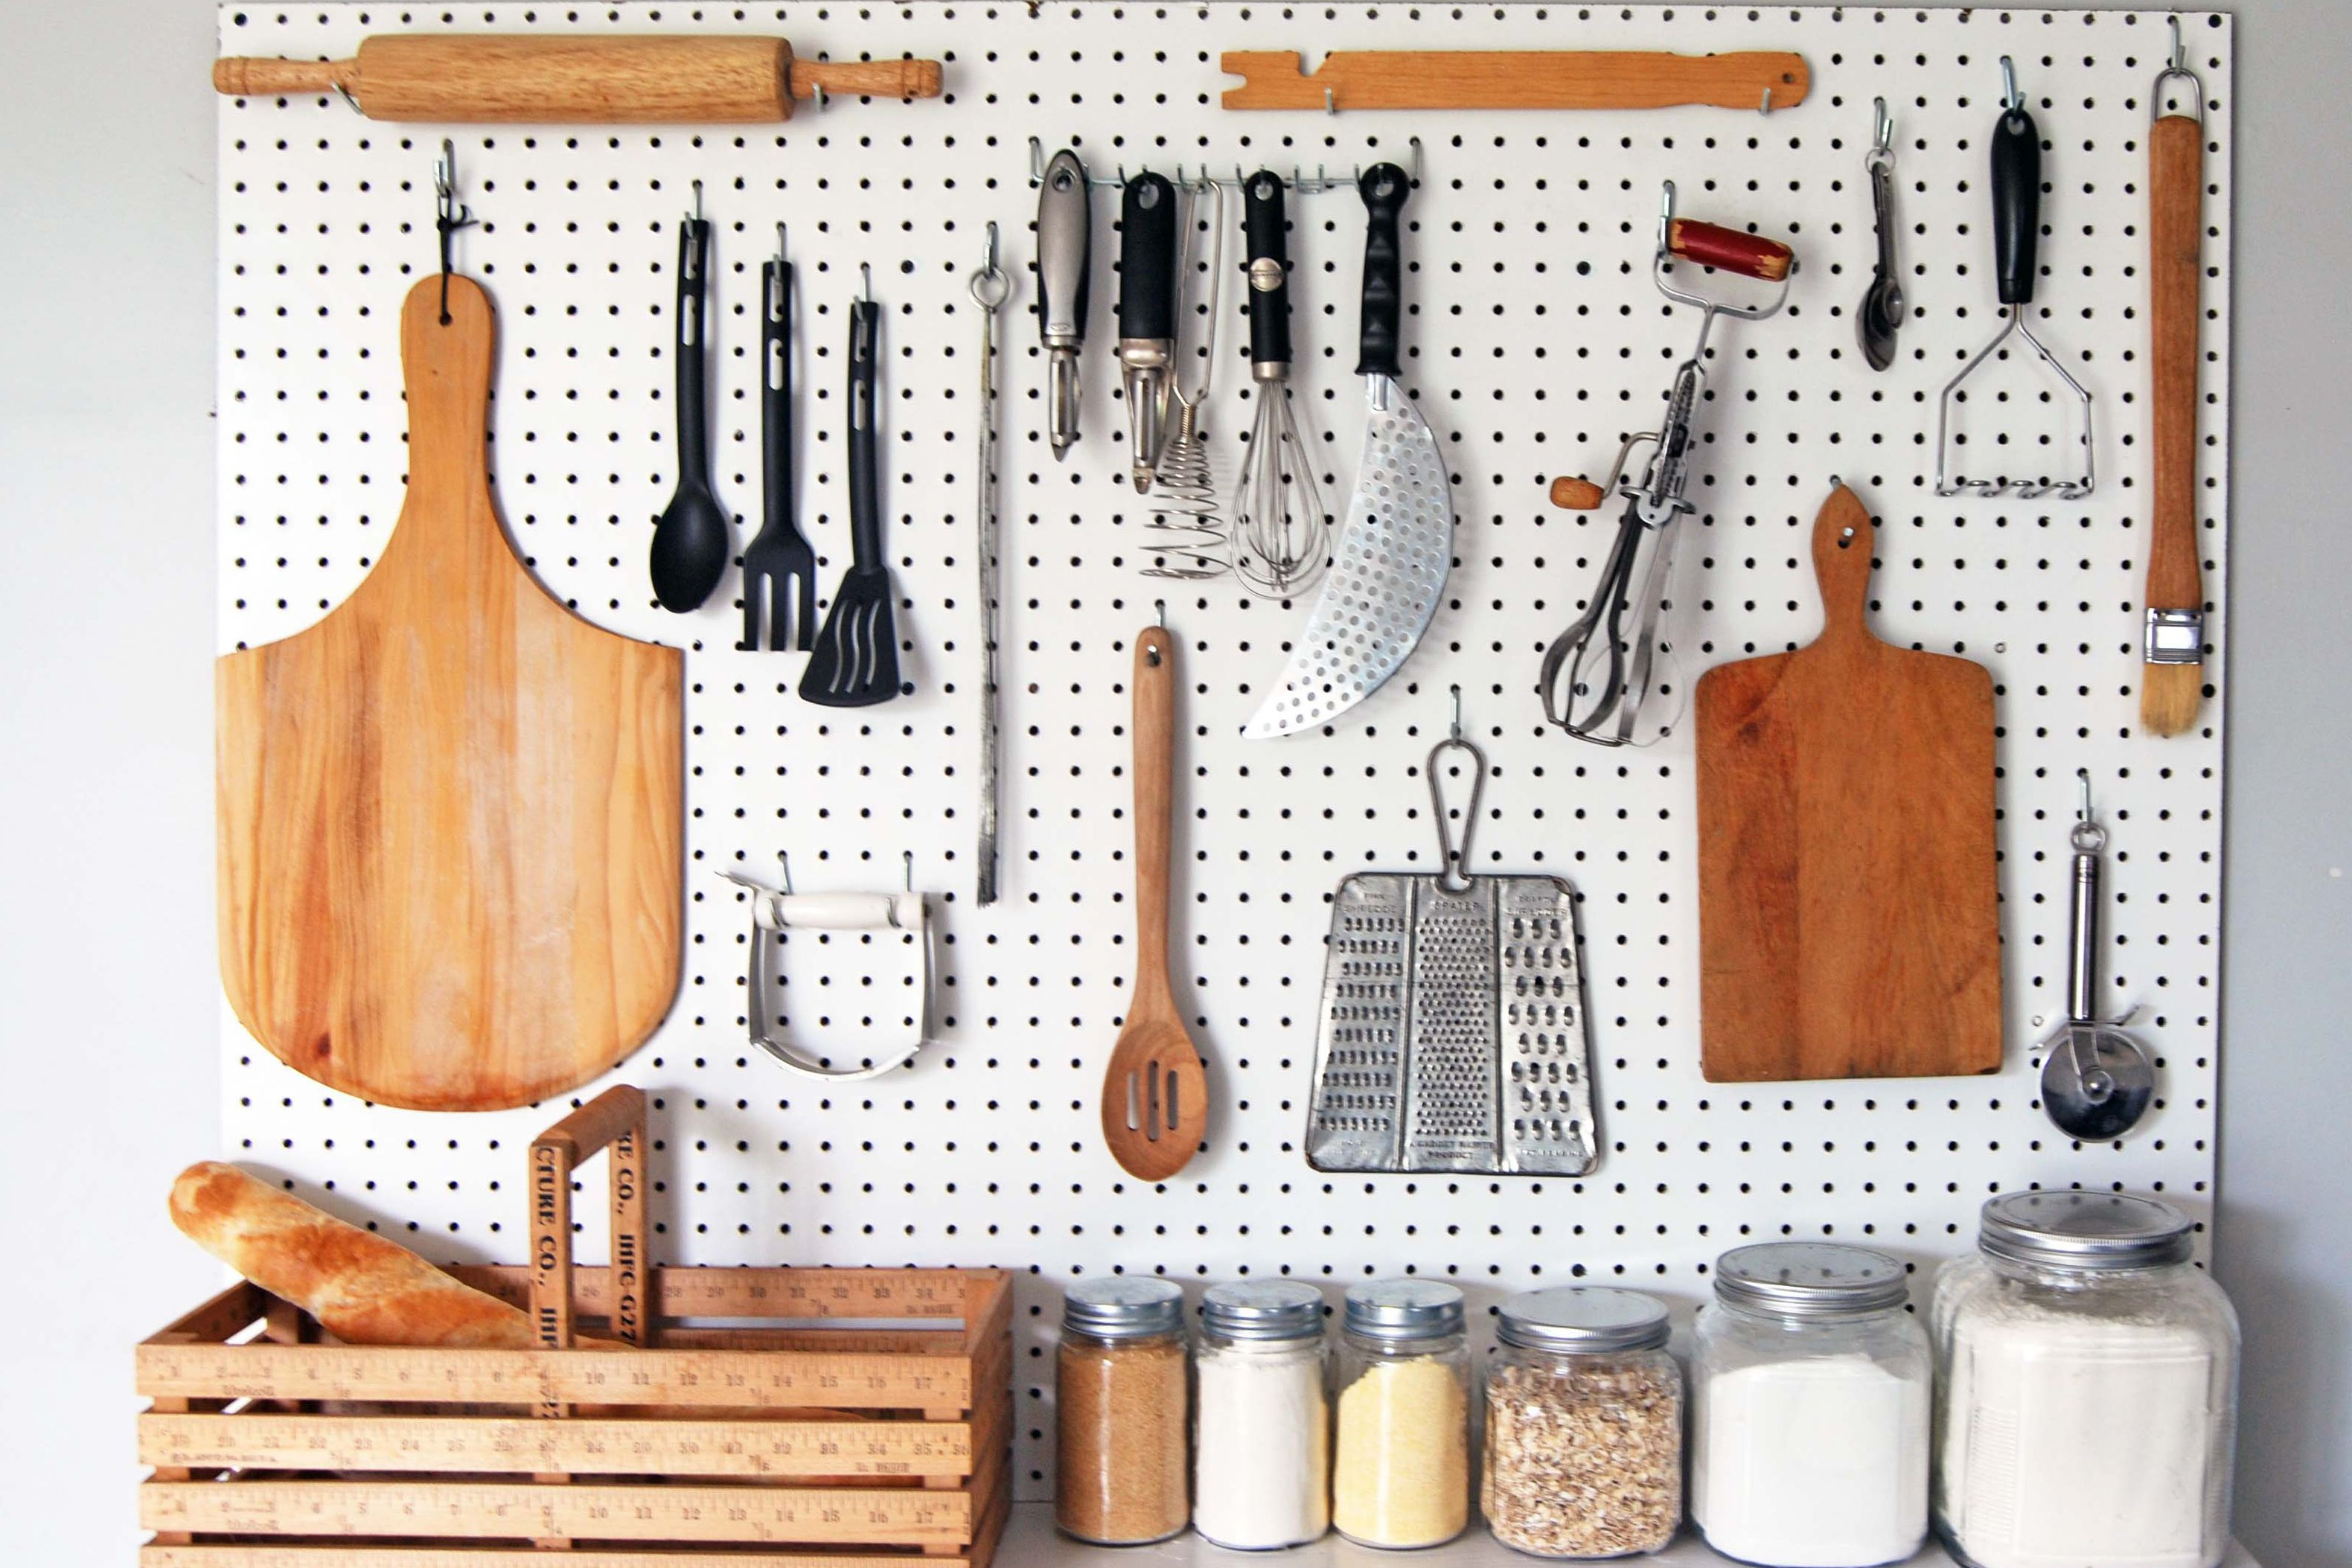 Kitchen pegboard with kitchen items hanging on it